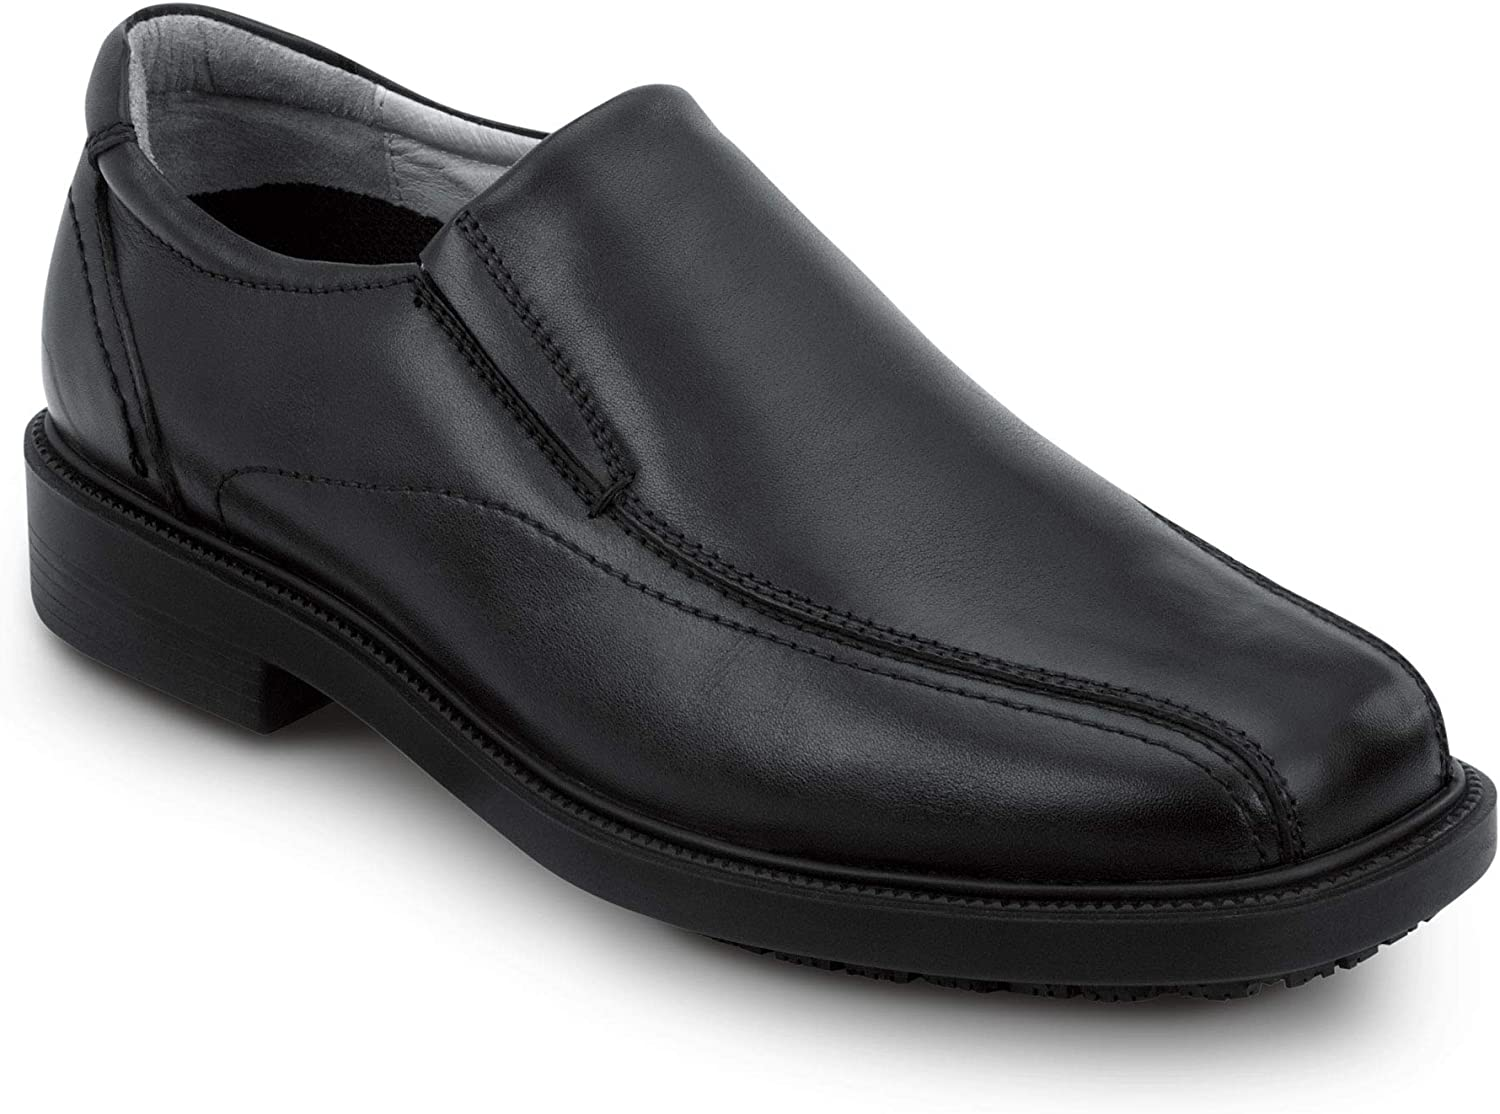 Amazon.com: SR Max Brooklyn, Men's, Black, Twin Gore Dress Style Soft Toe  Slip Resistant Work Shoe: Shoes